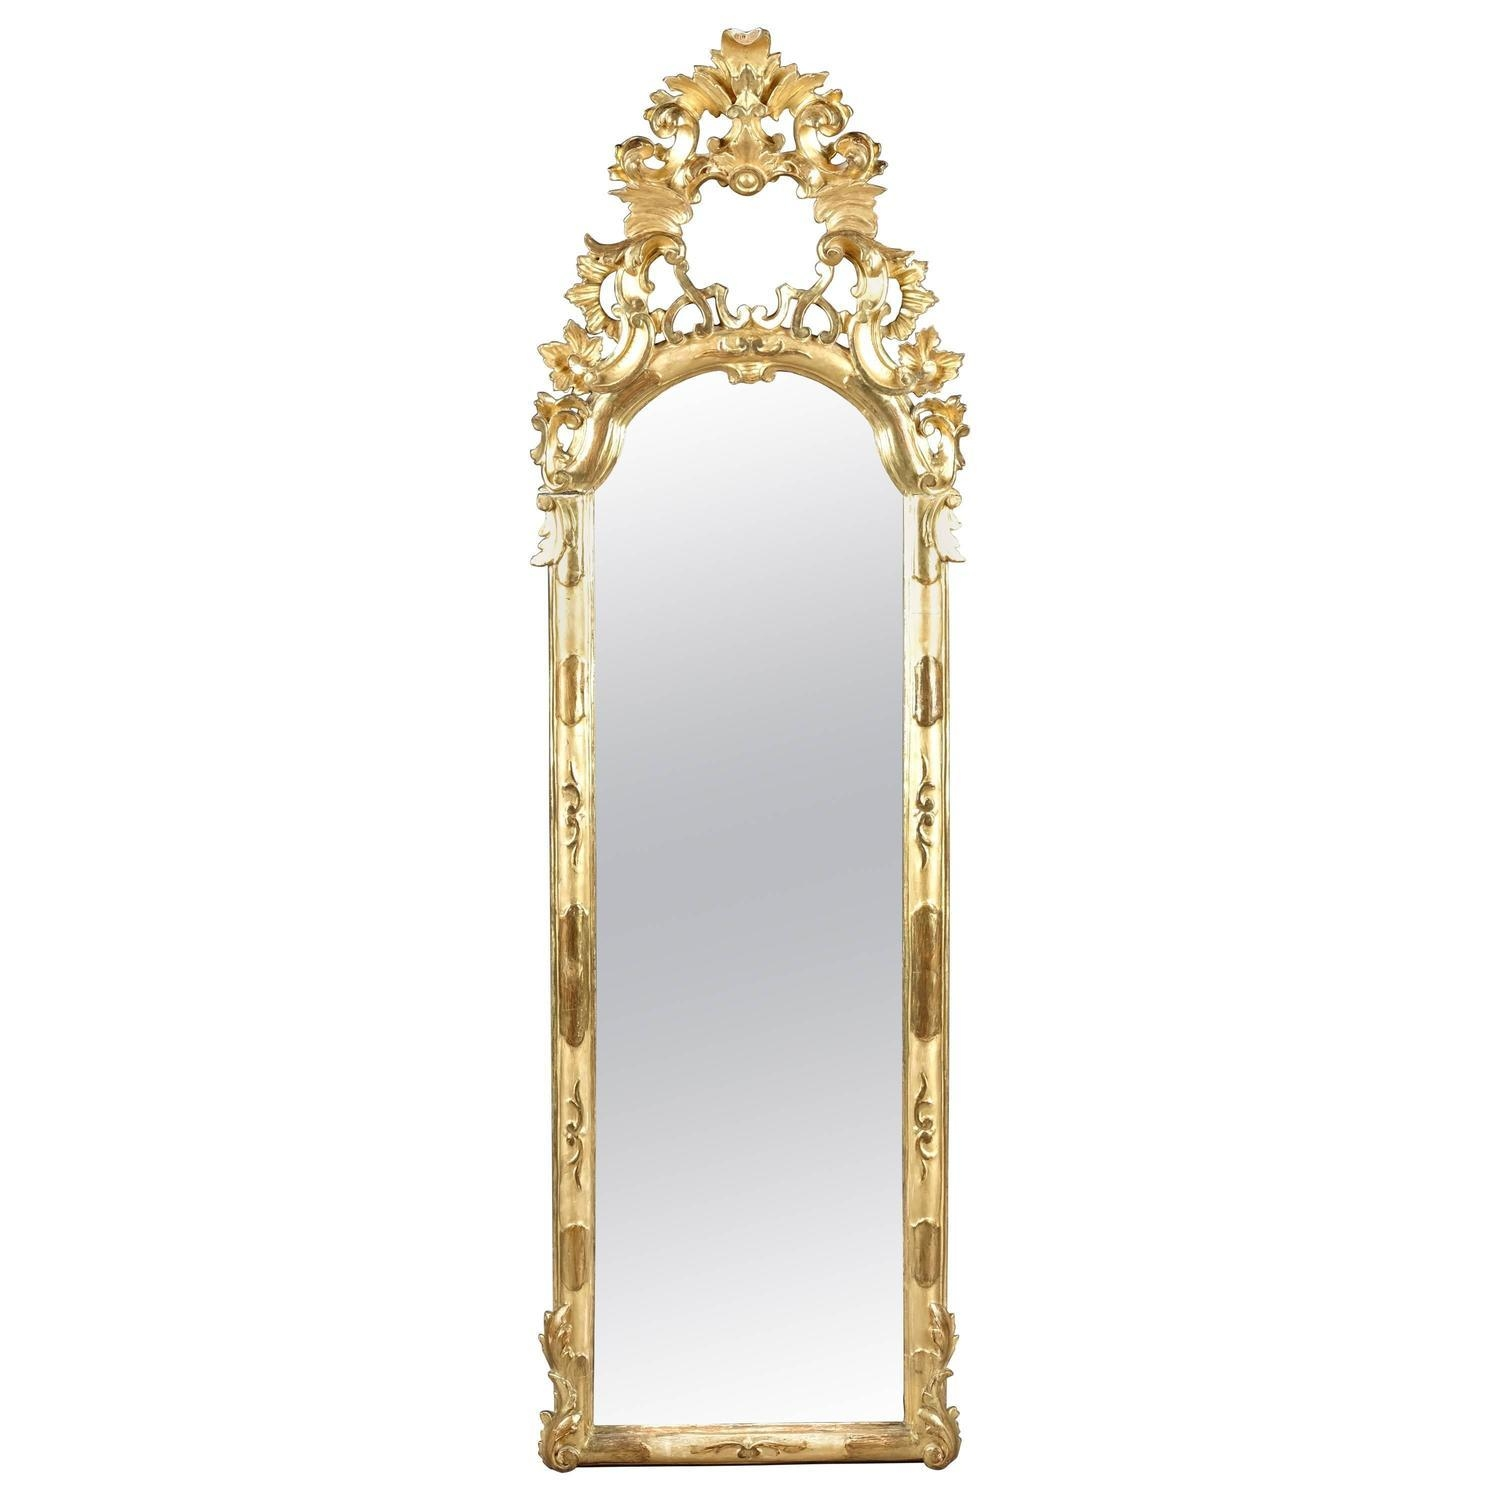 Gold Floor Mirrors And Full Length Mirrors – 14 For Sale At 1Stdibs In Gold Full Length Mirror (Image 13 of 20)